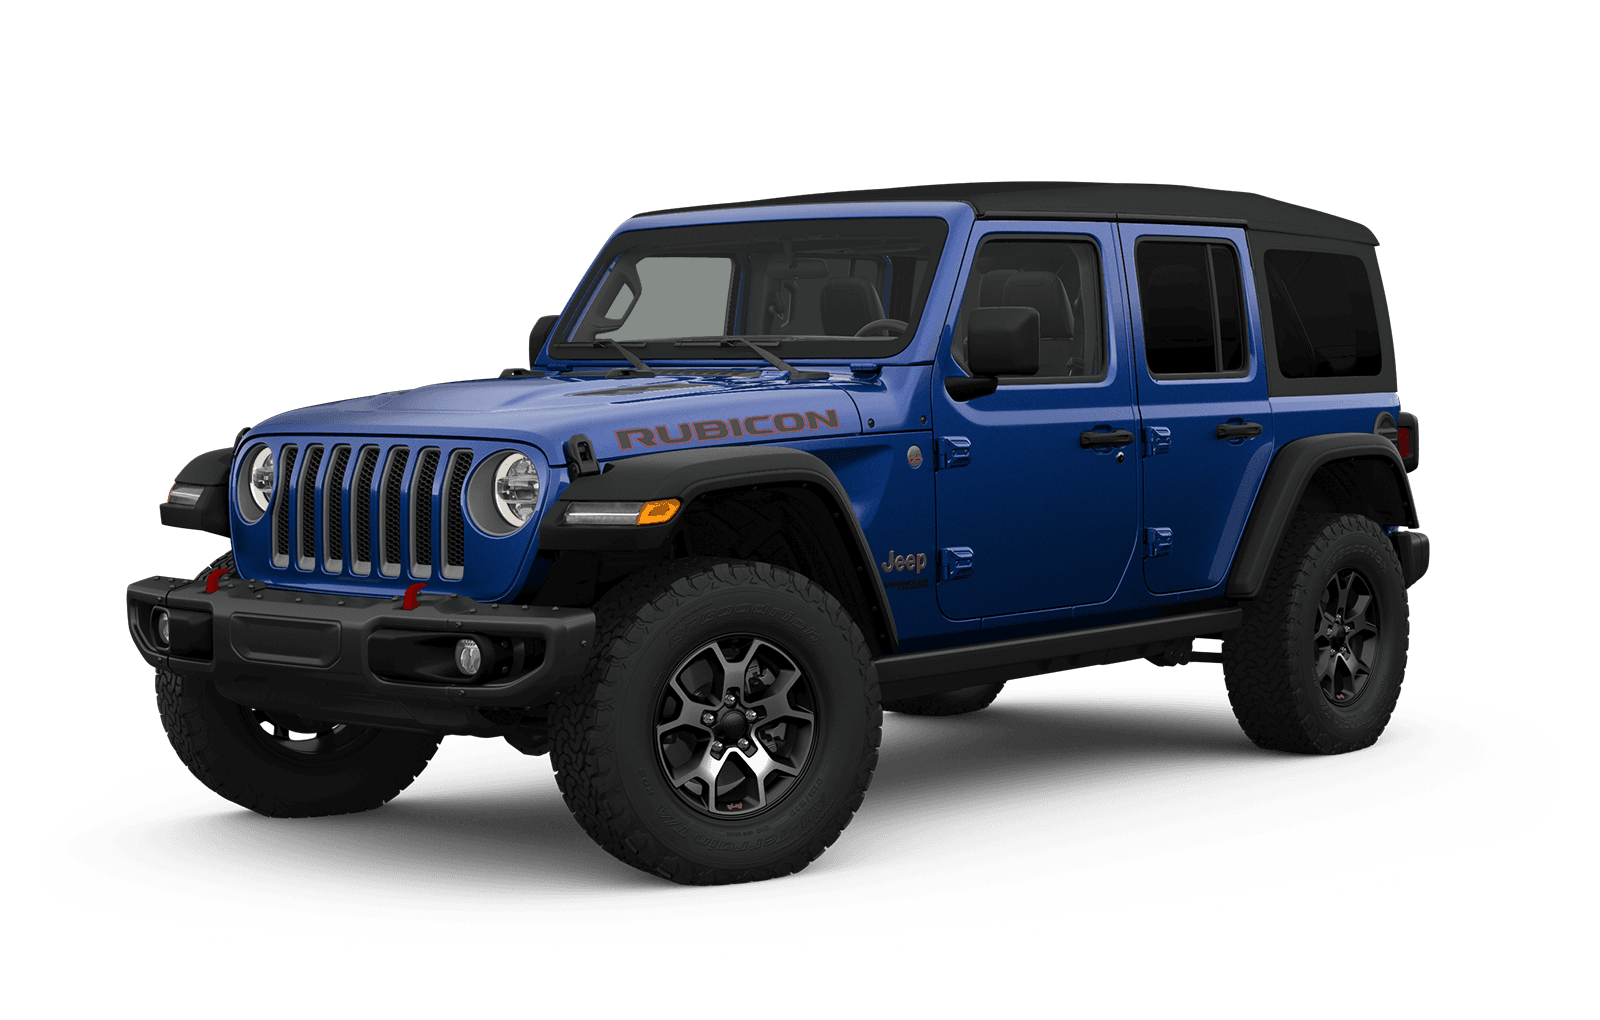 2019 Jeep Wrangler Full View in blue with Wheels